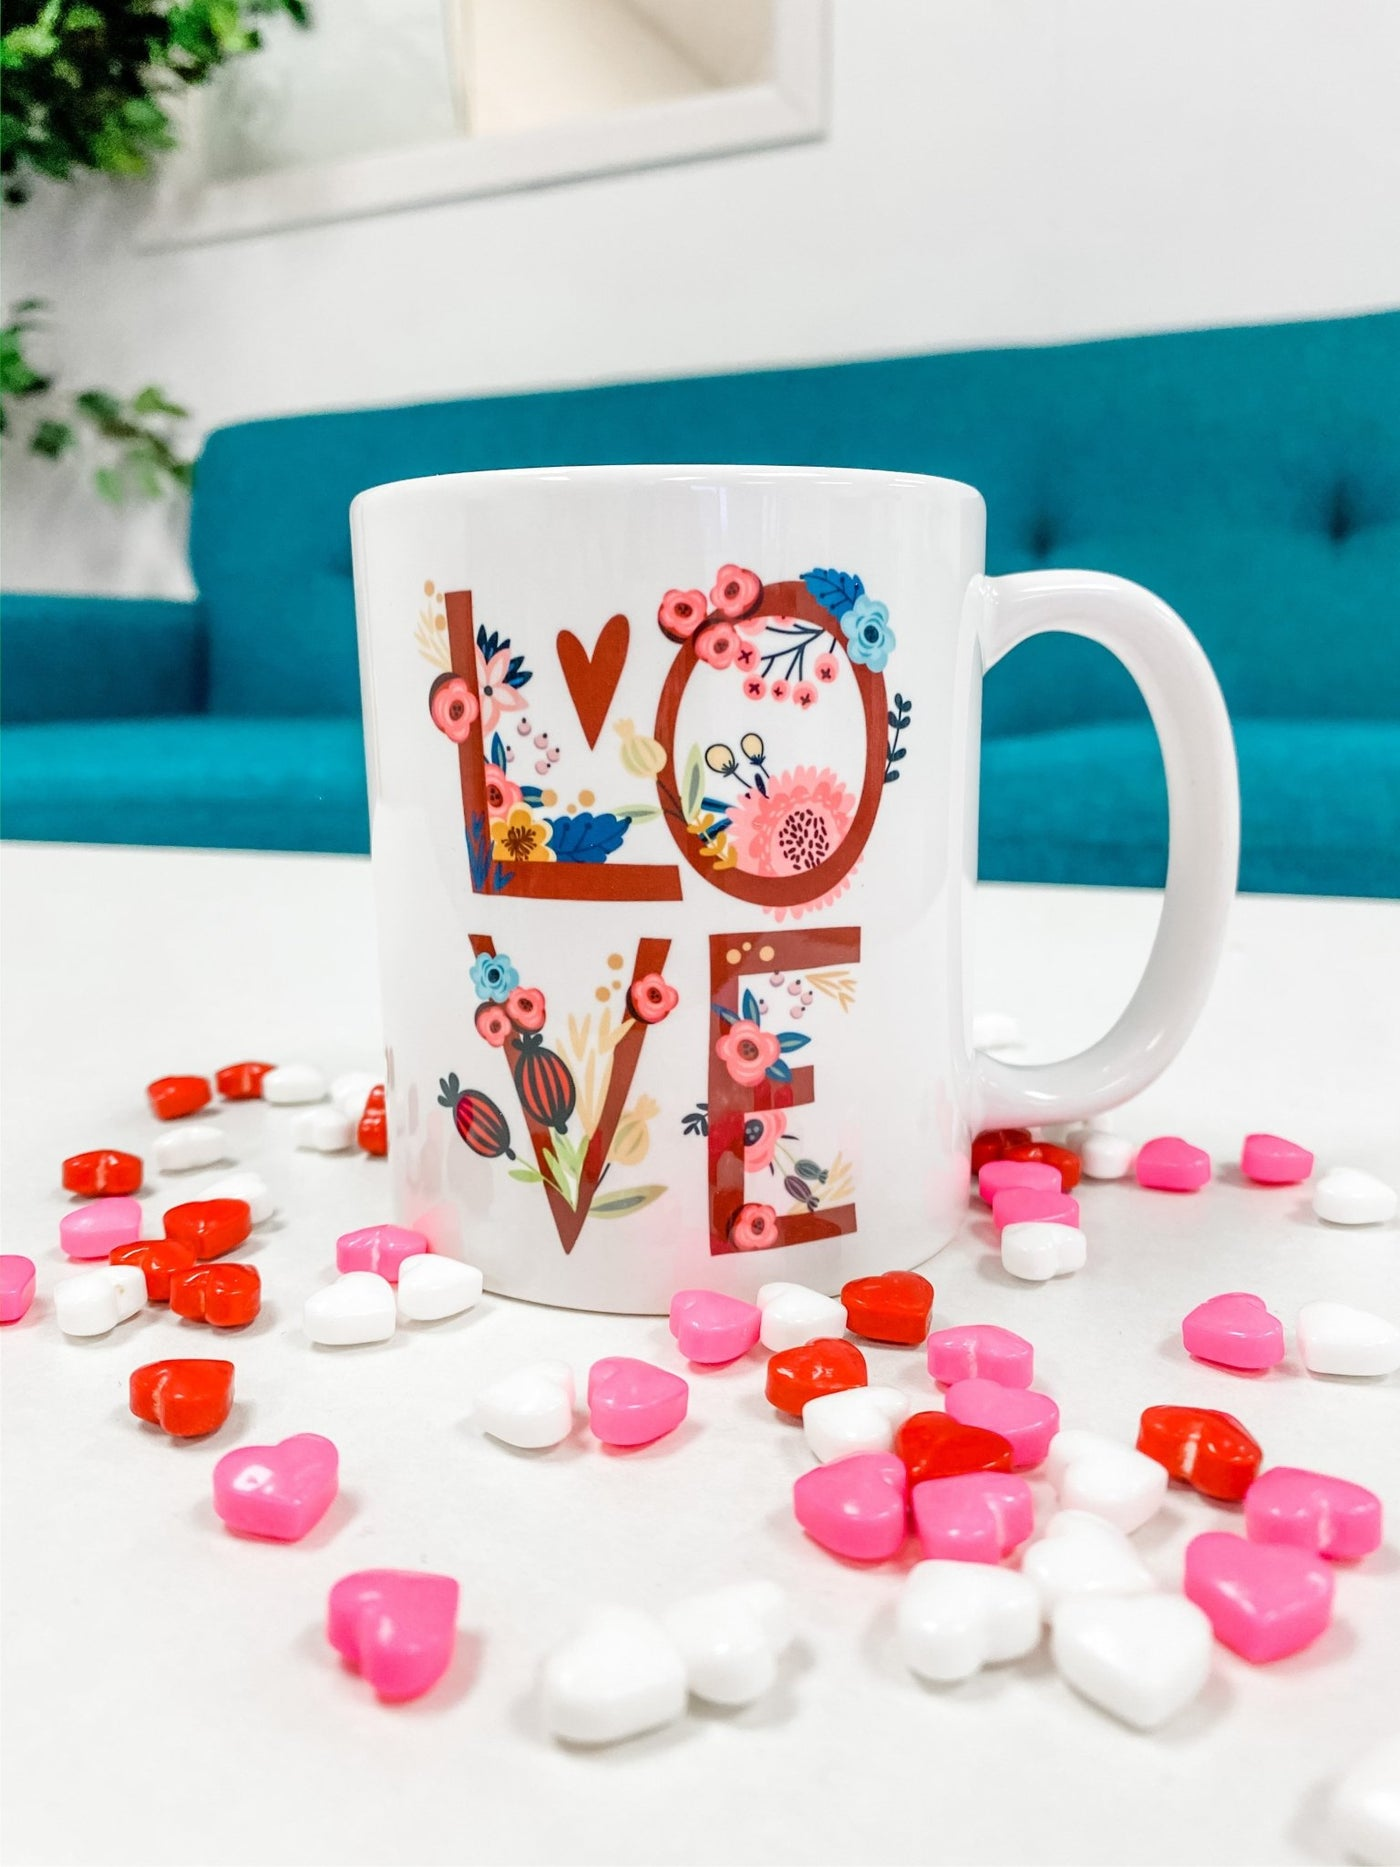 Valentine Gift Ideas to Fill Your Home with Love